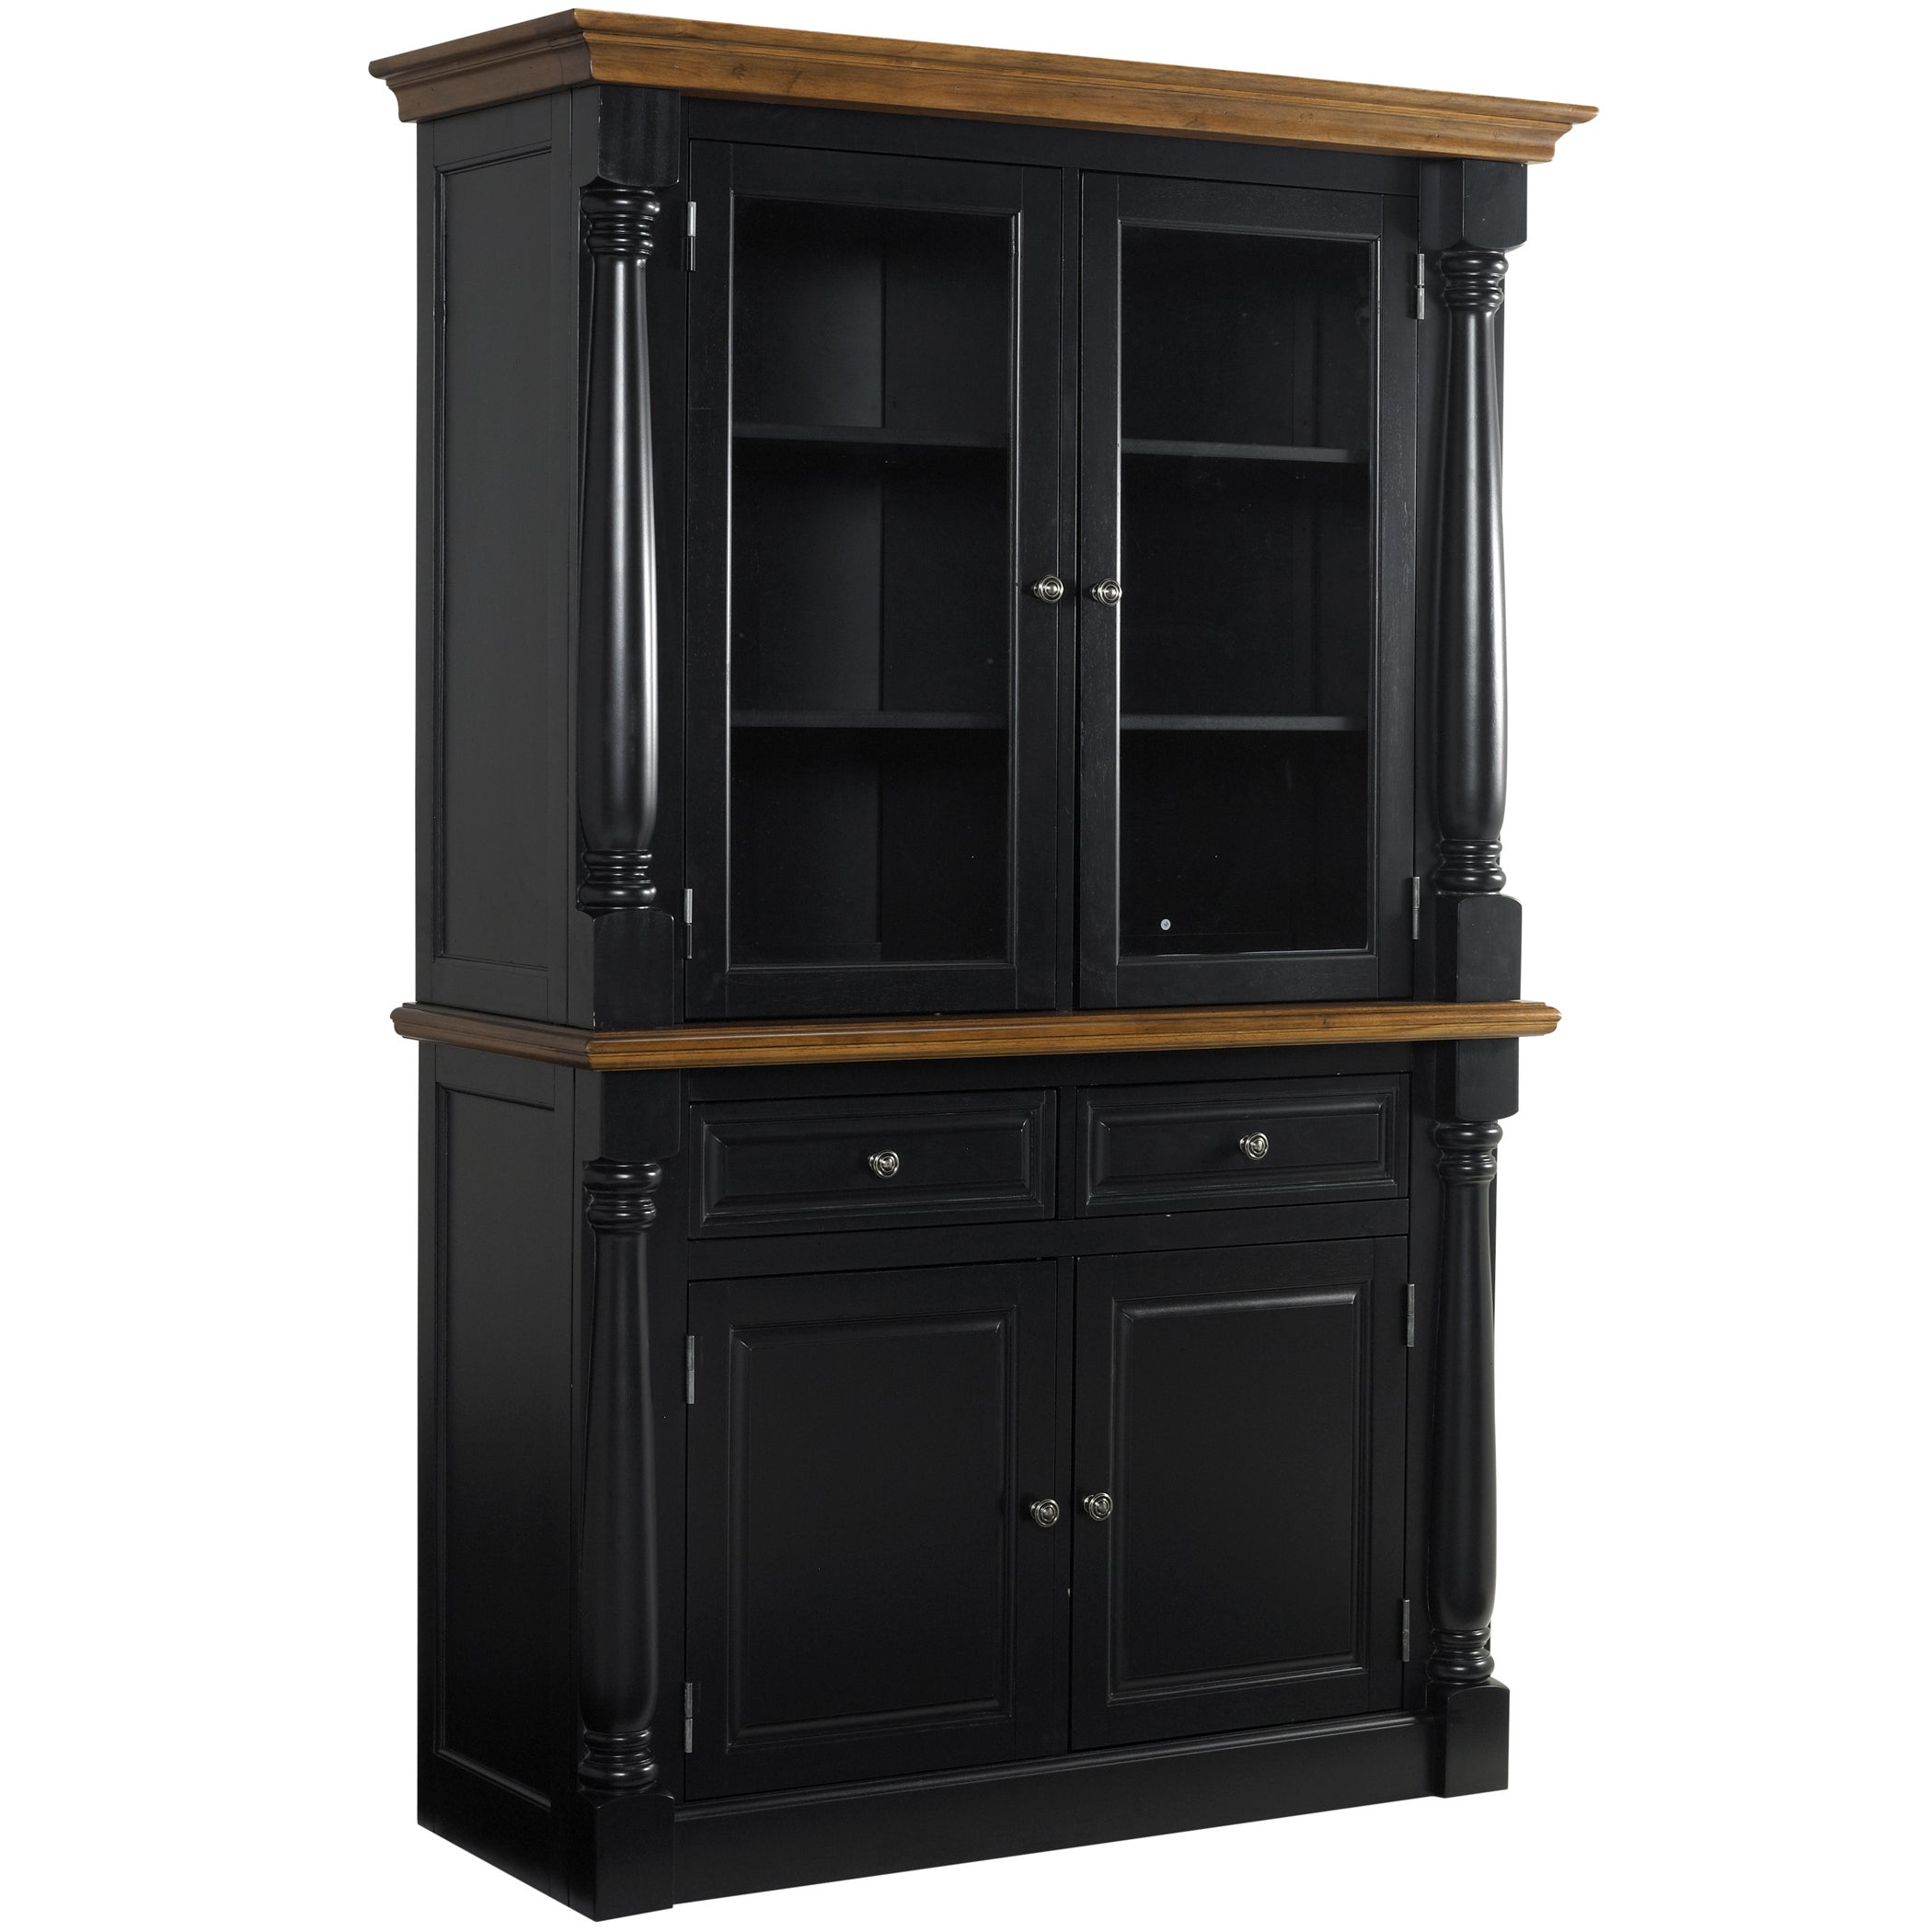 Monarch Black Buffet and Hutch at Sears.com